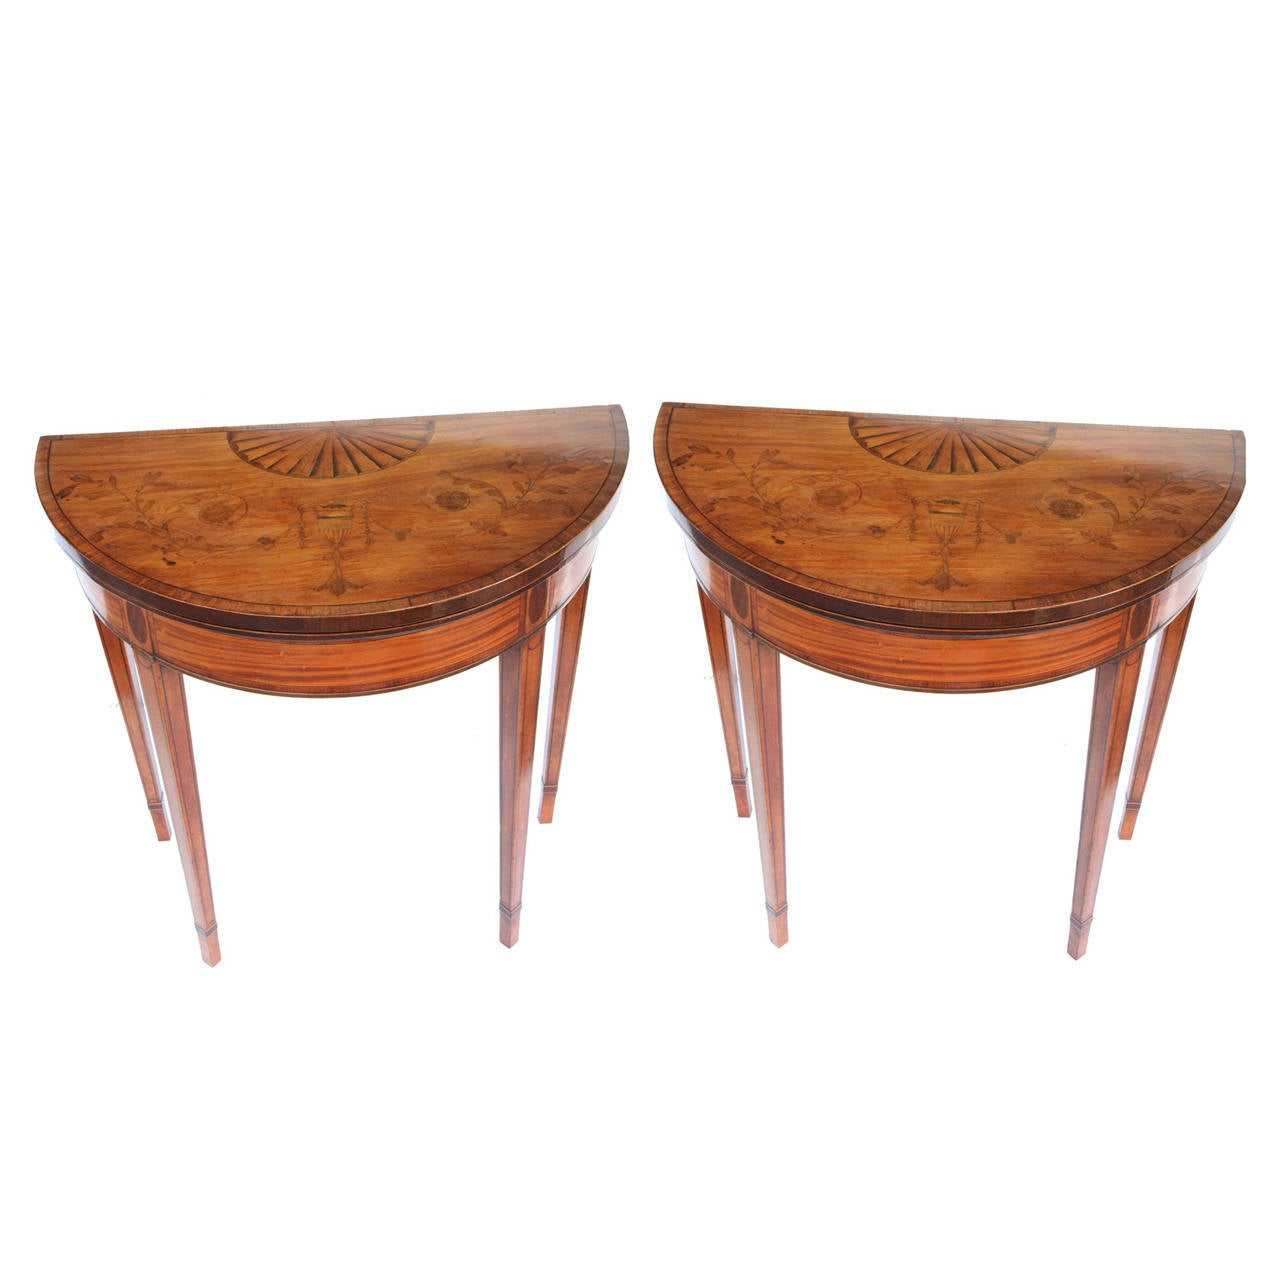 Early 19th Century George III Pair of Satinwood Fold-Over Demilune Card Tables